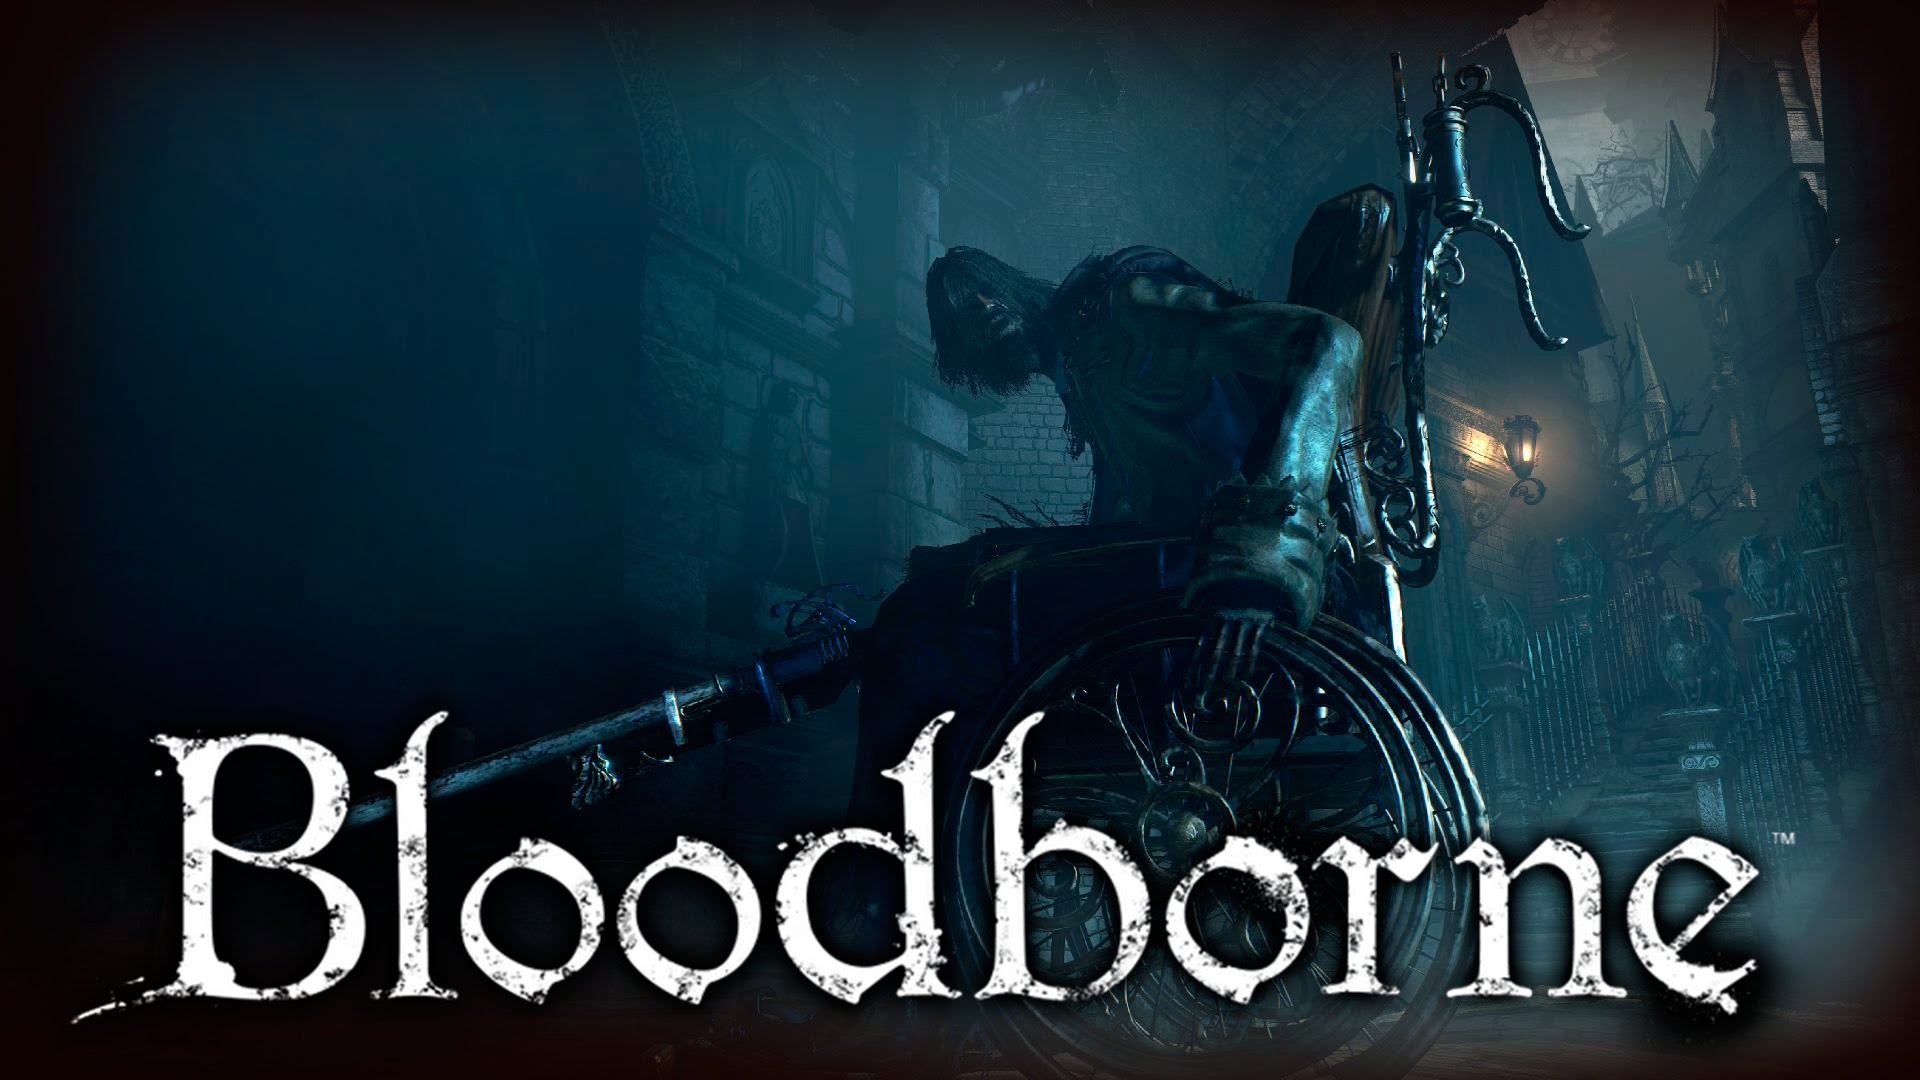 Mortal Kombat X Wallpapers Hd Iphone Bloodborne Wallpapers Pictures Images